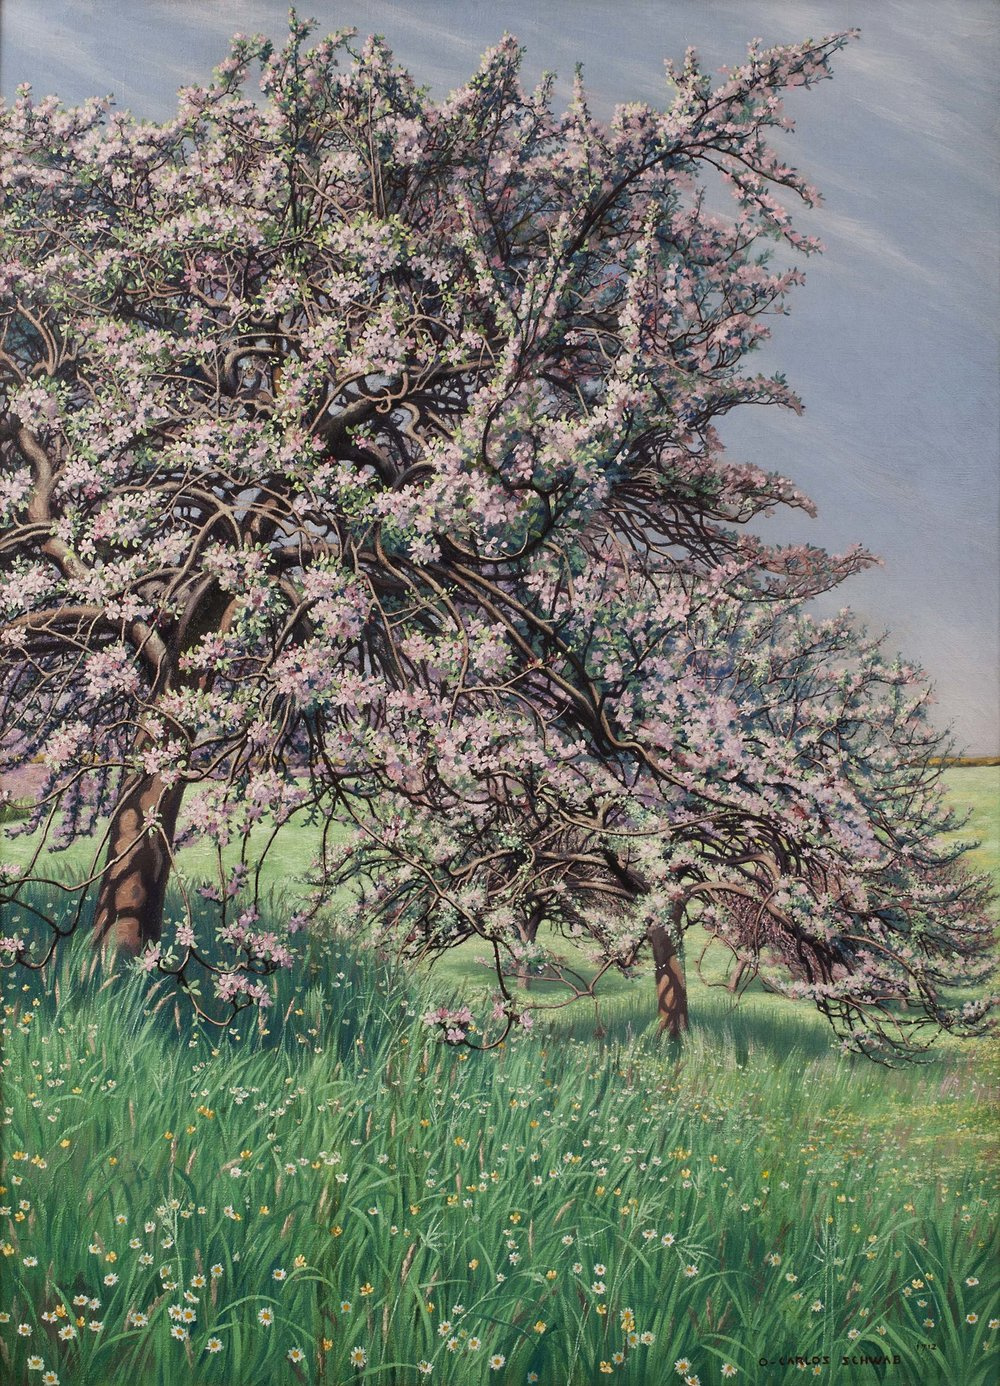 CARLOS SCHWABE (Altona, Holstein 1877 - 1926 Avon, Seine-et-Marne)     Pommiers Fleuris (Blooming Apple Tree)     Signed and dated lower right:  O-CARLOS SCHWAB/1912     Oil on canvas; 39 1/4 x 28 3/4 inches (100 x 73 cm)